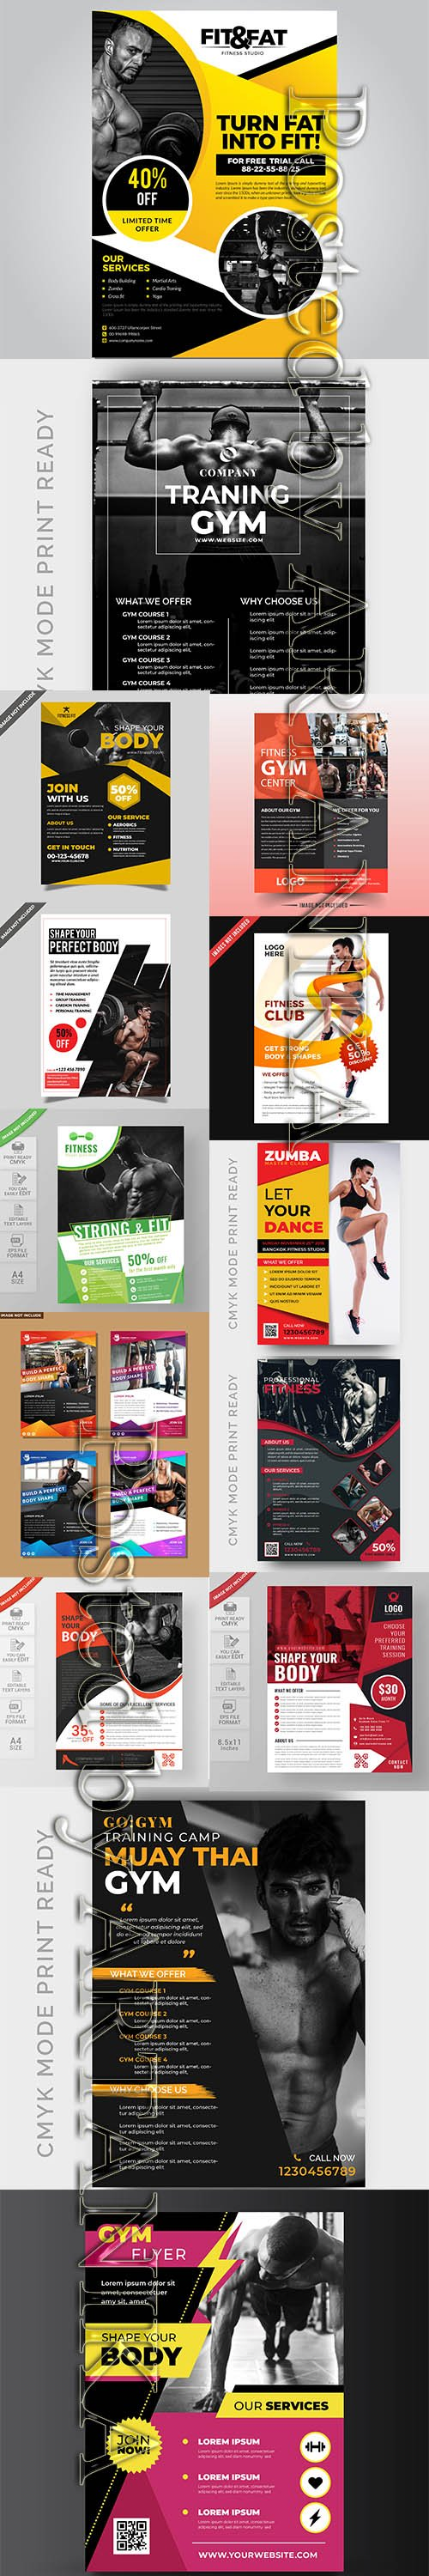 Modern Gym Flyer and Fitness Social Media Post Template Vol 20